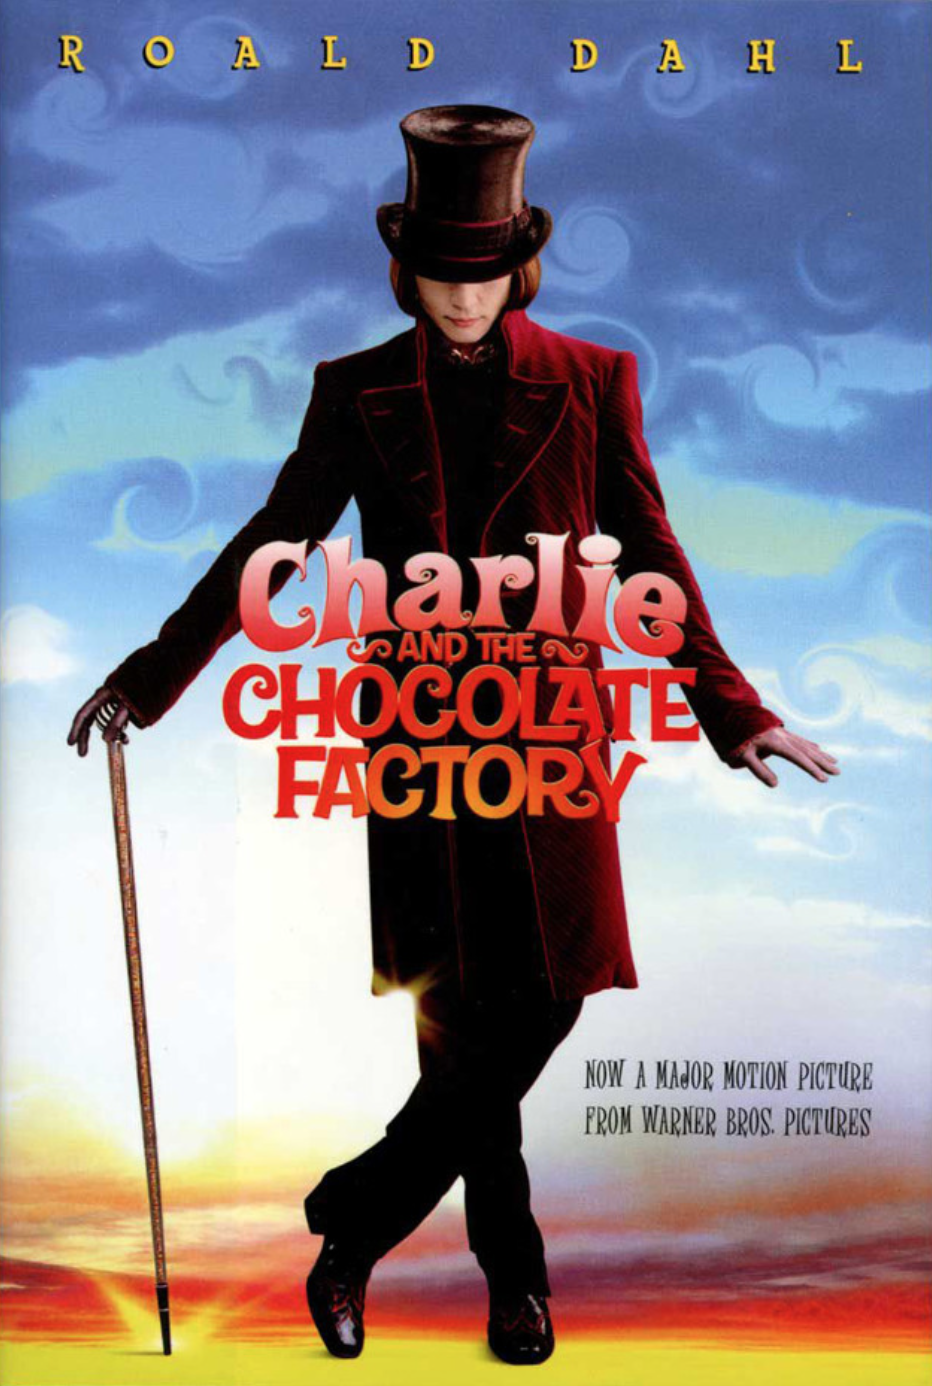 charlie-and-the-chocolate-factory-book-cover-with-movie-graphics